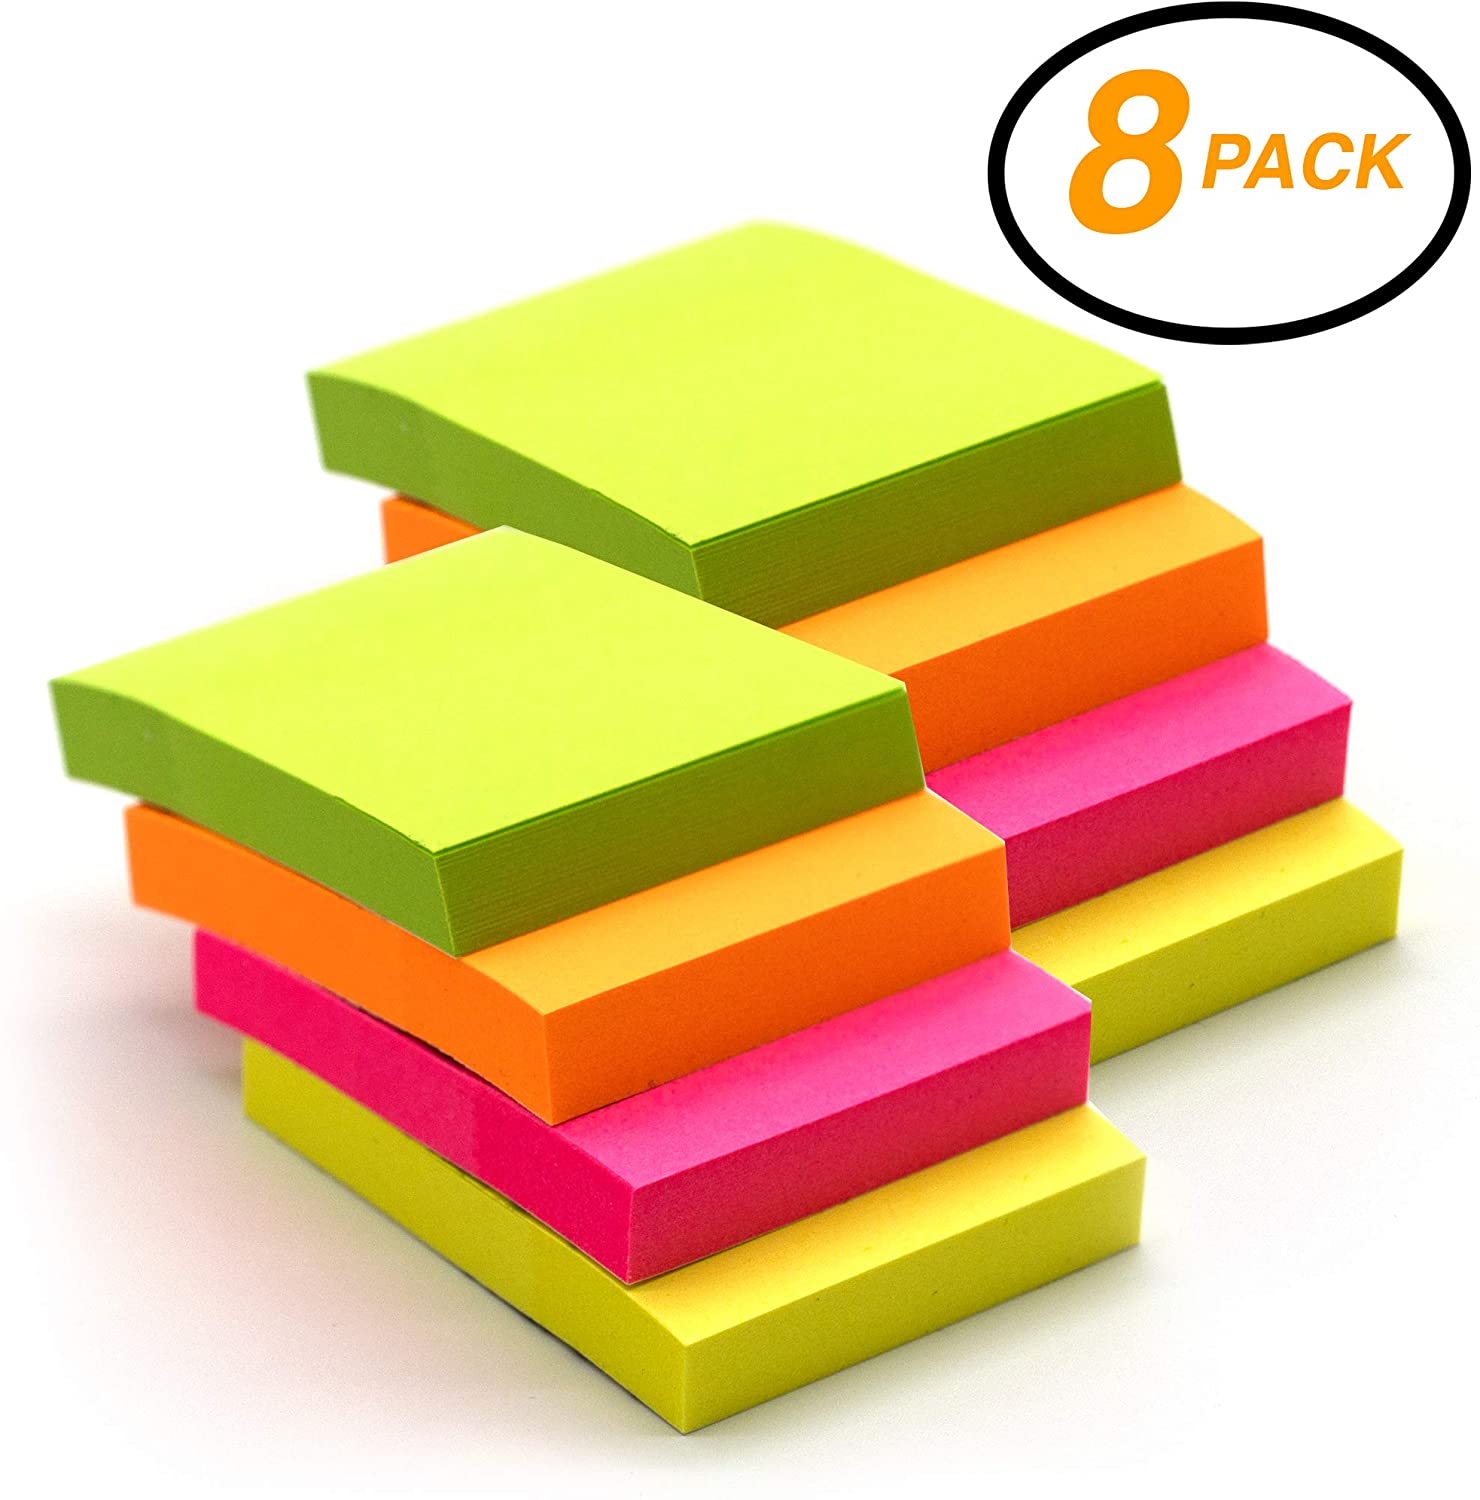 Emraw Tiny Sticky Notes Stick It Stickies, Plain Small 1.5 x 2 Rectangular Neon Bright Colored Removable Self Stick On Note Memo Pad for Office, Home, School - Pack of 8 Pads